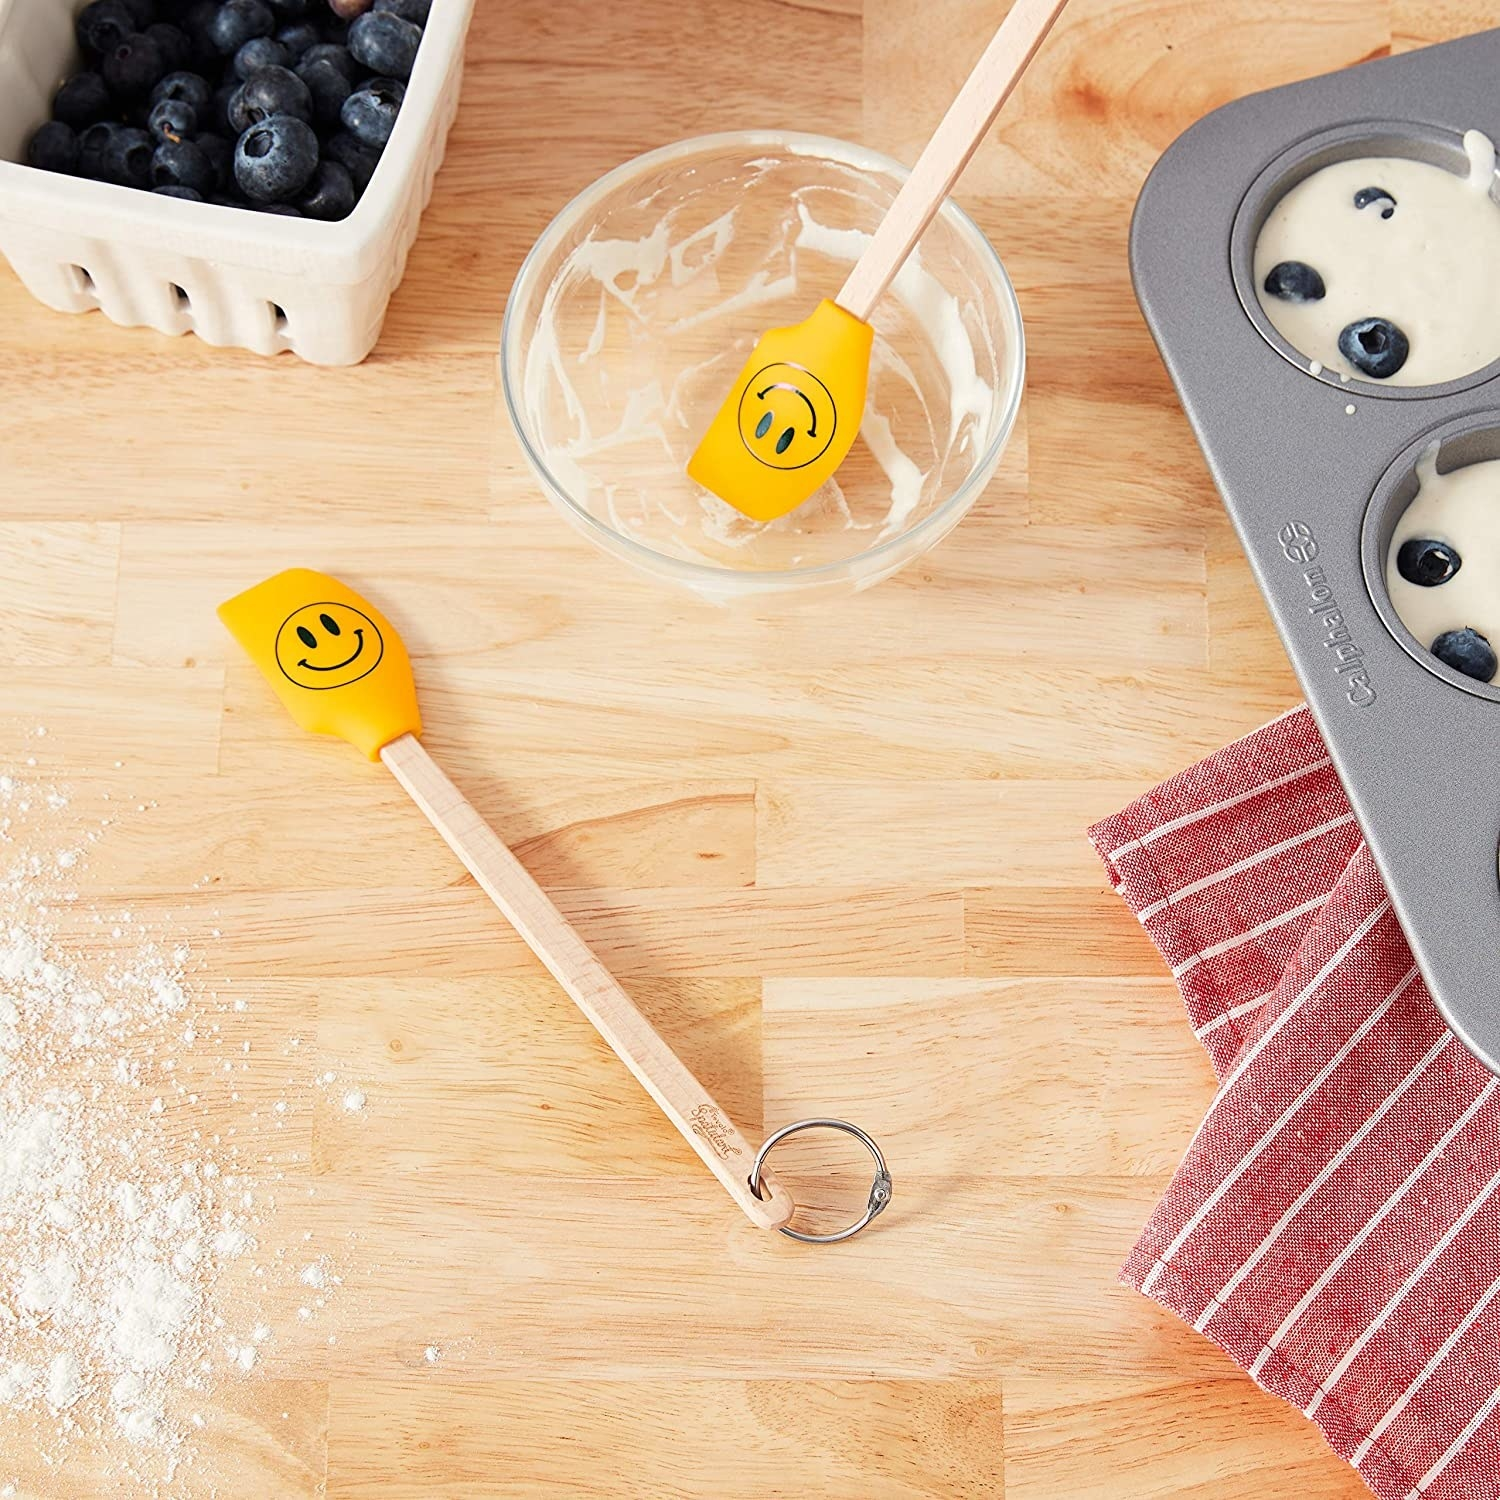 Two smiley face spatulas surrounded by baking supplies